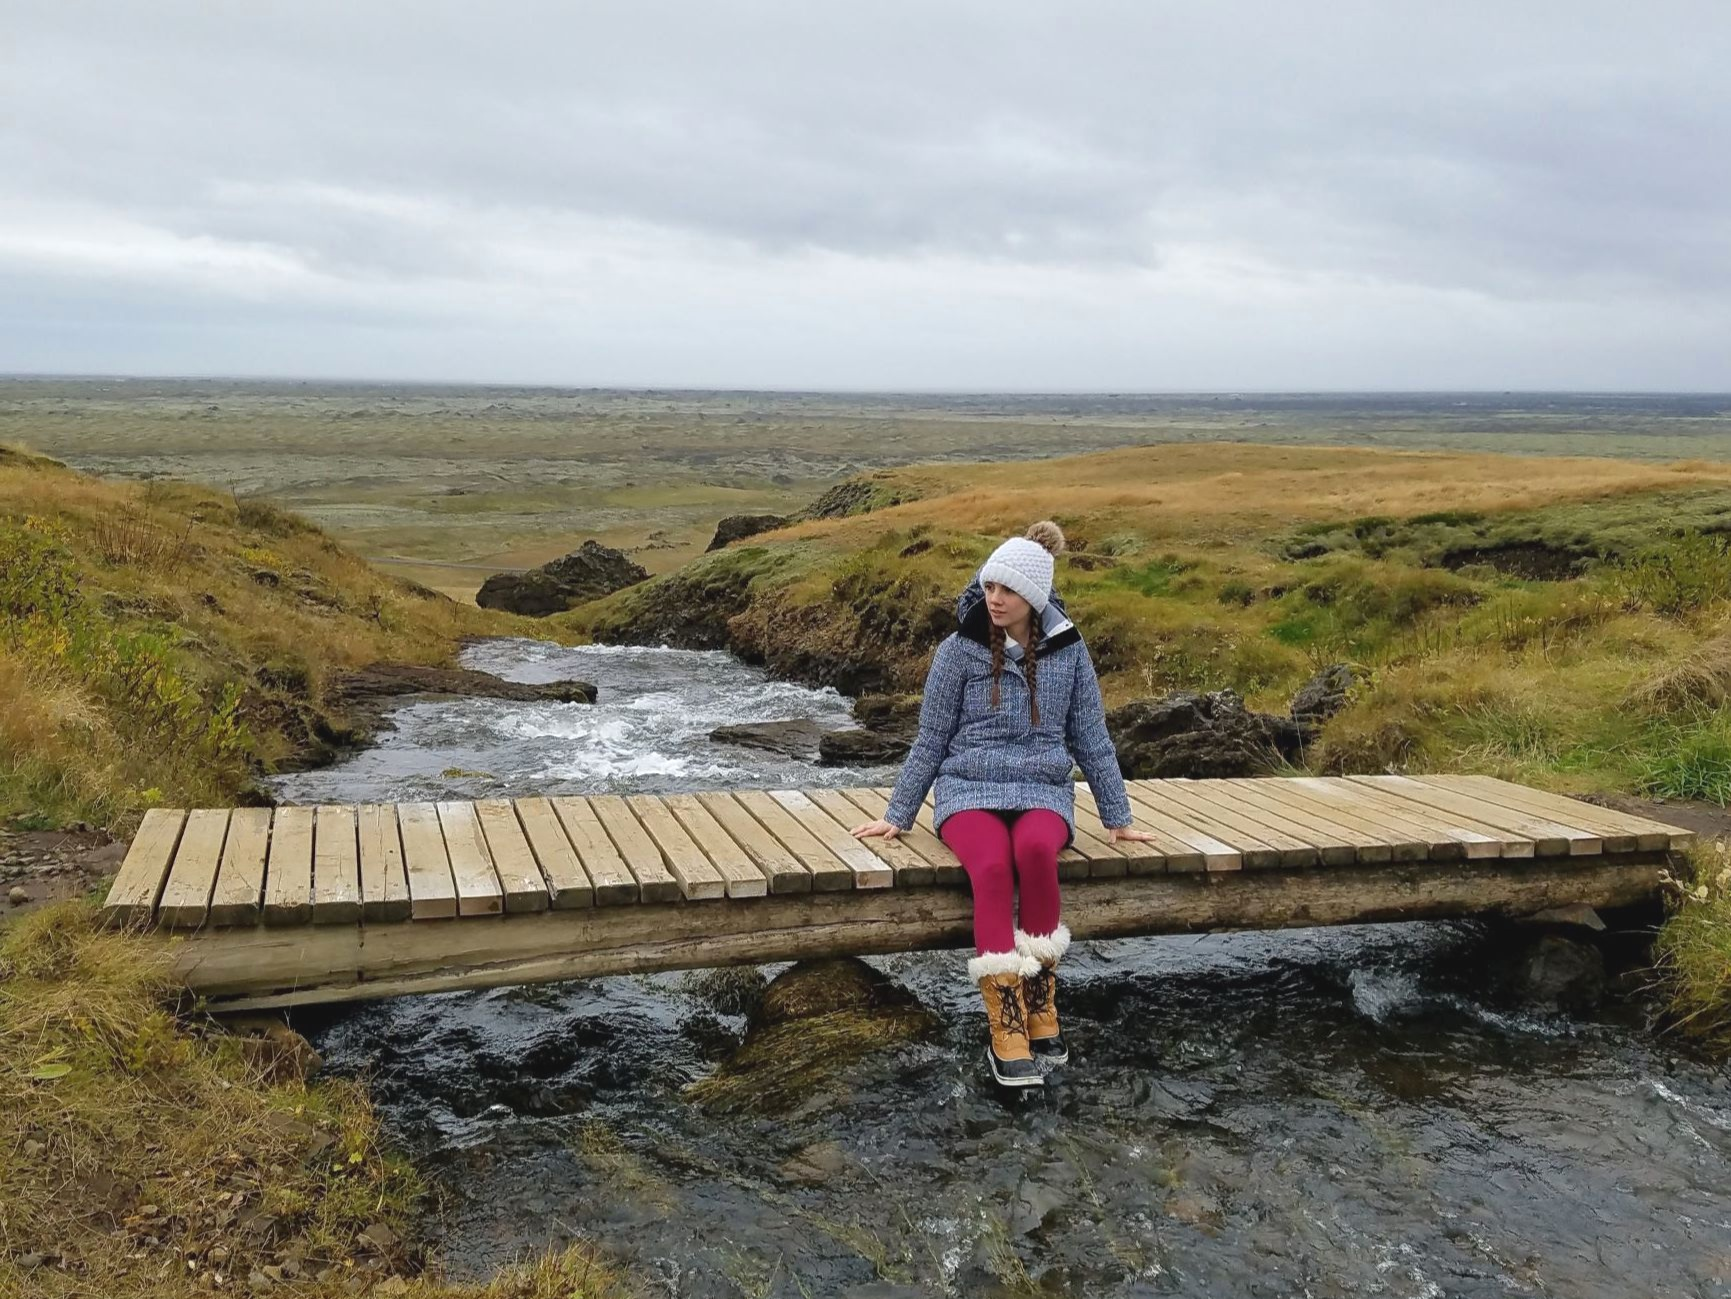 This coat and boots outfit on a stream in Iceland shows what to wear in Iceland.